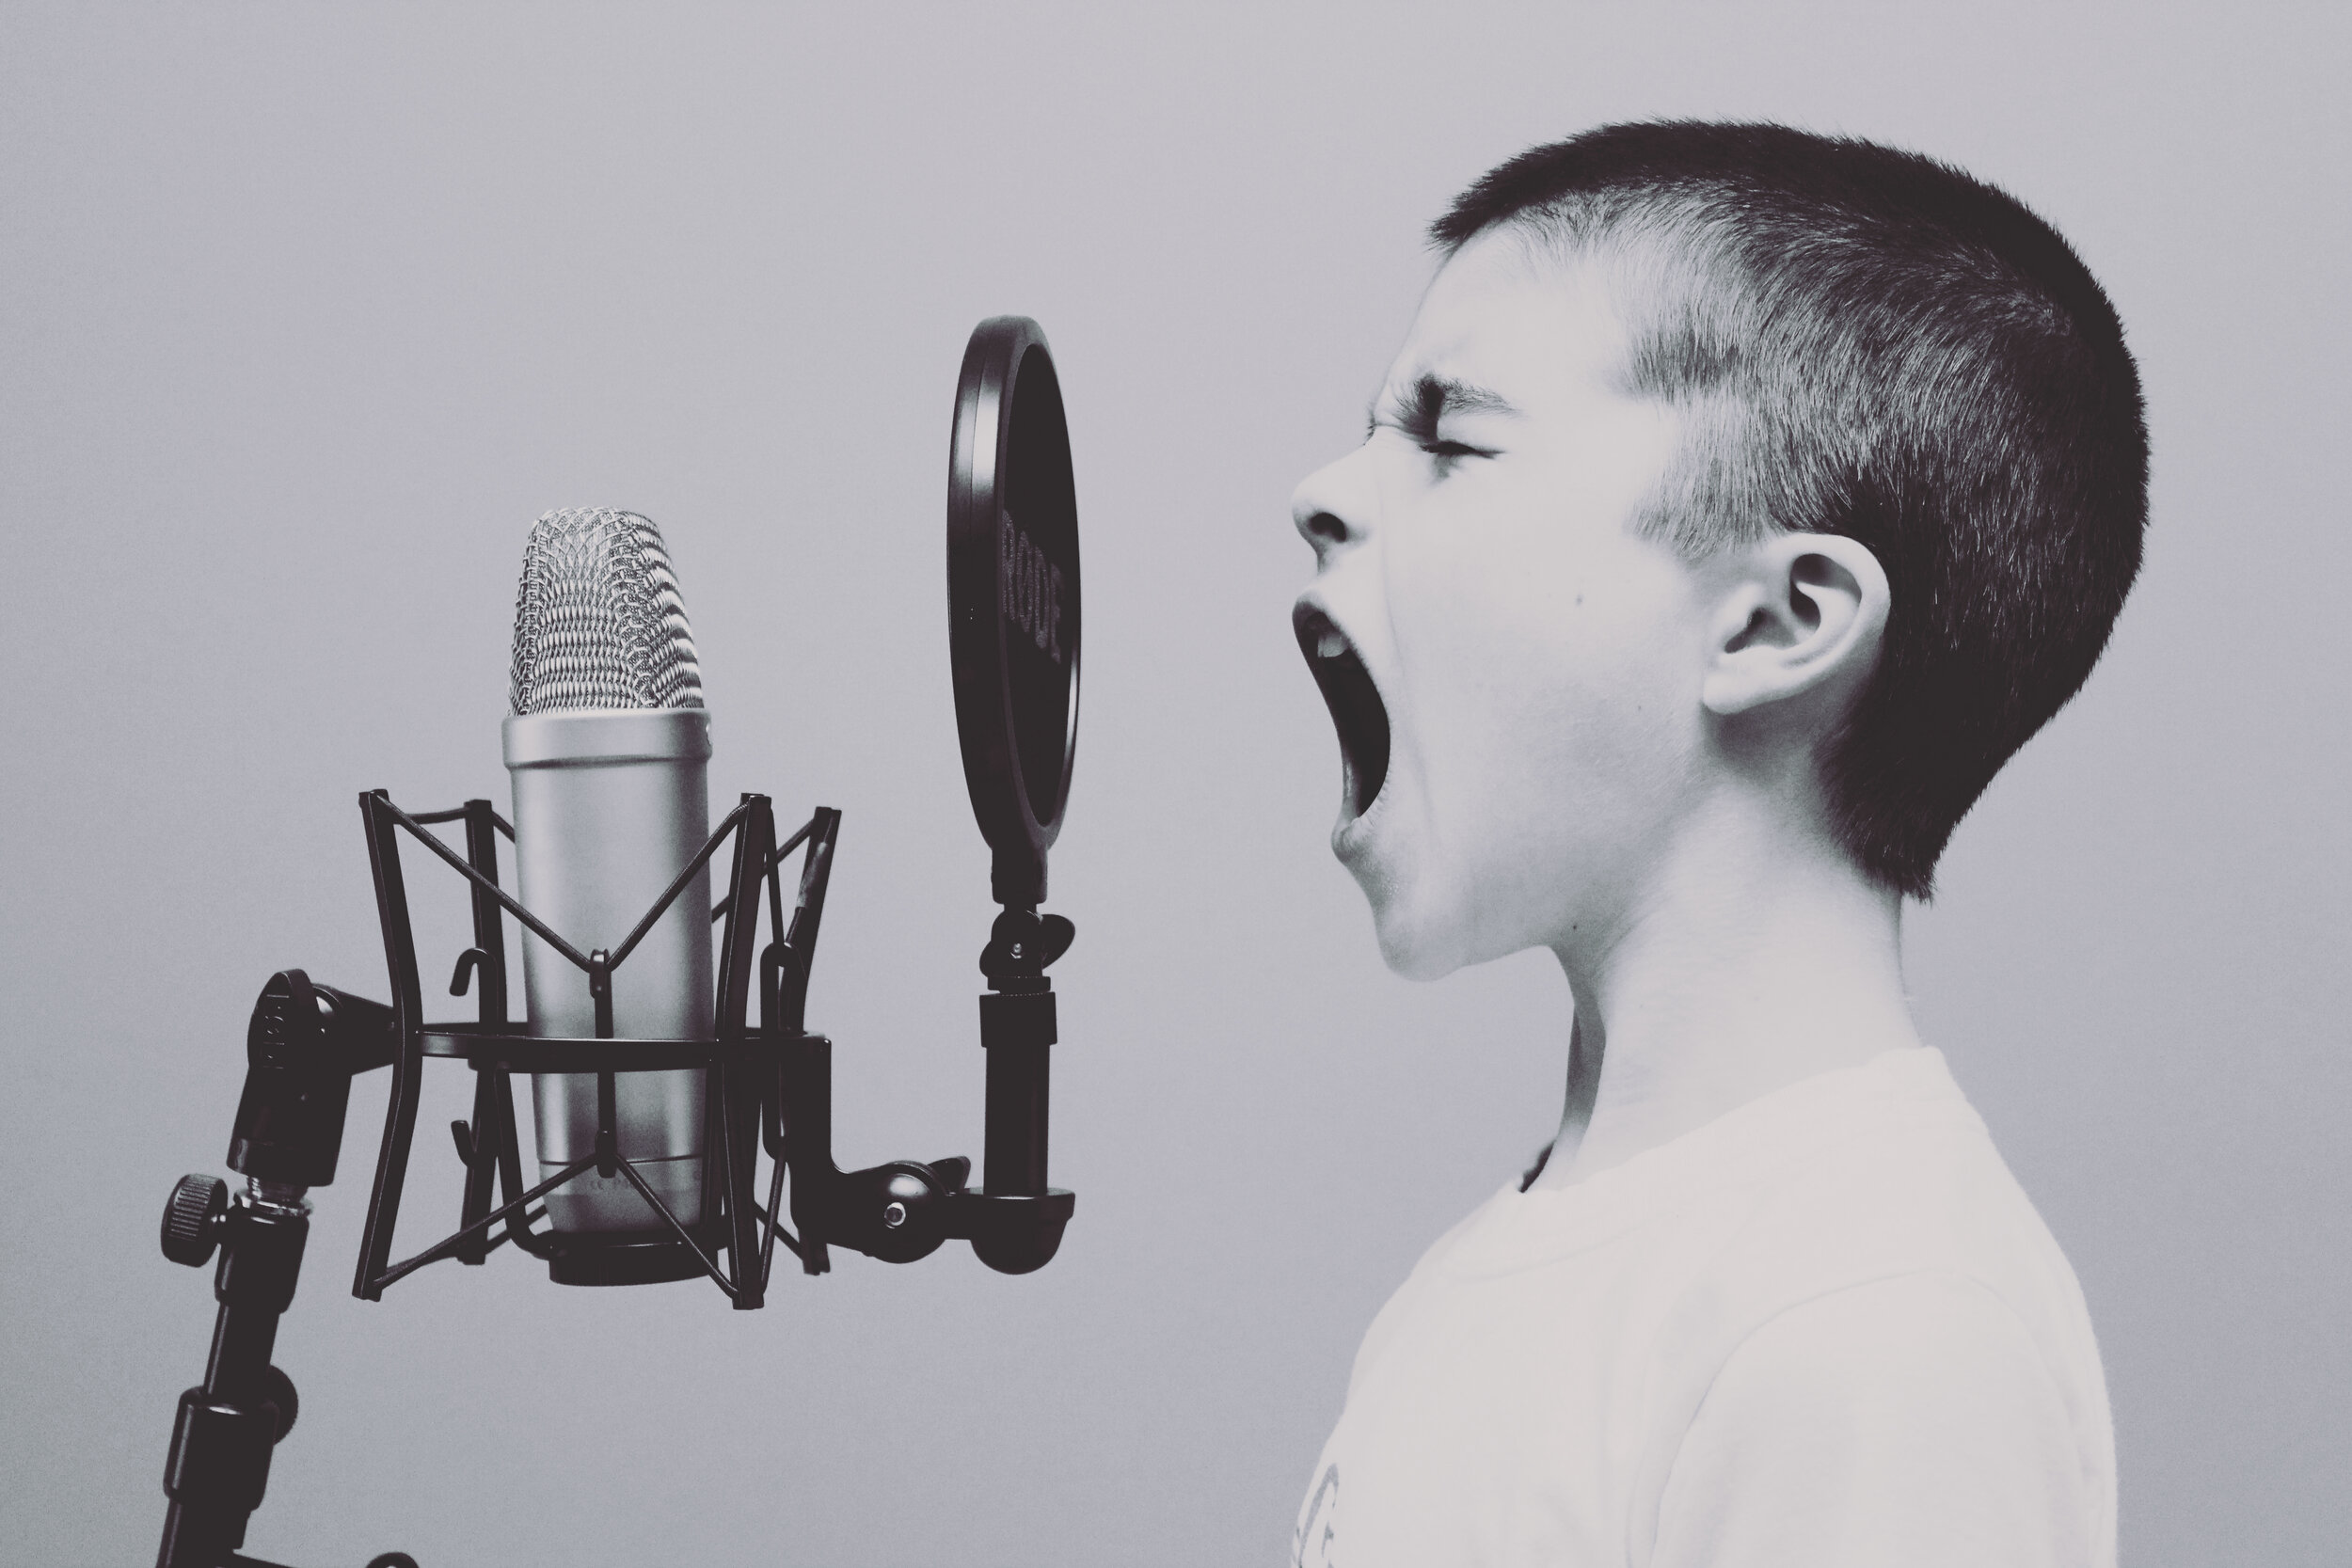 Joyful Noise - Come out and continue listening to some joyful noise, where kids sing! 10-10:20 am every Sunday with all ages welcome! 3 and under should be with parents.